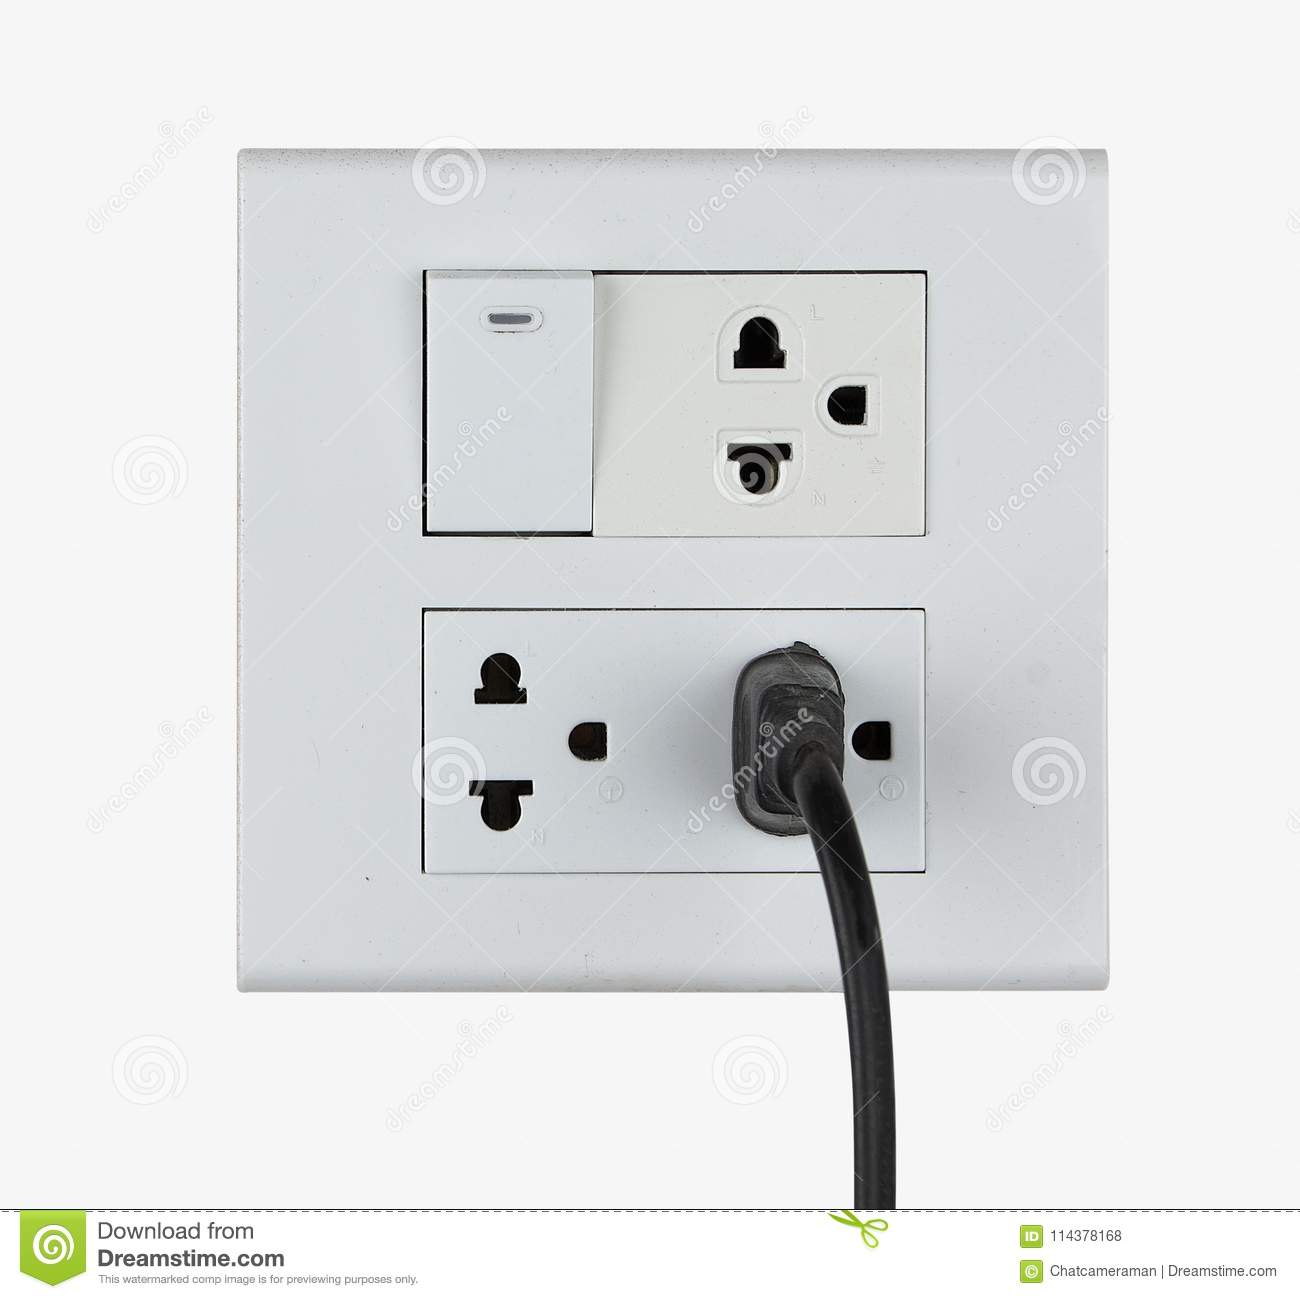 Plug in socket and switch stock photo. Image of interior - 114378168